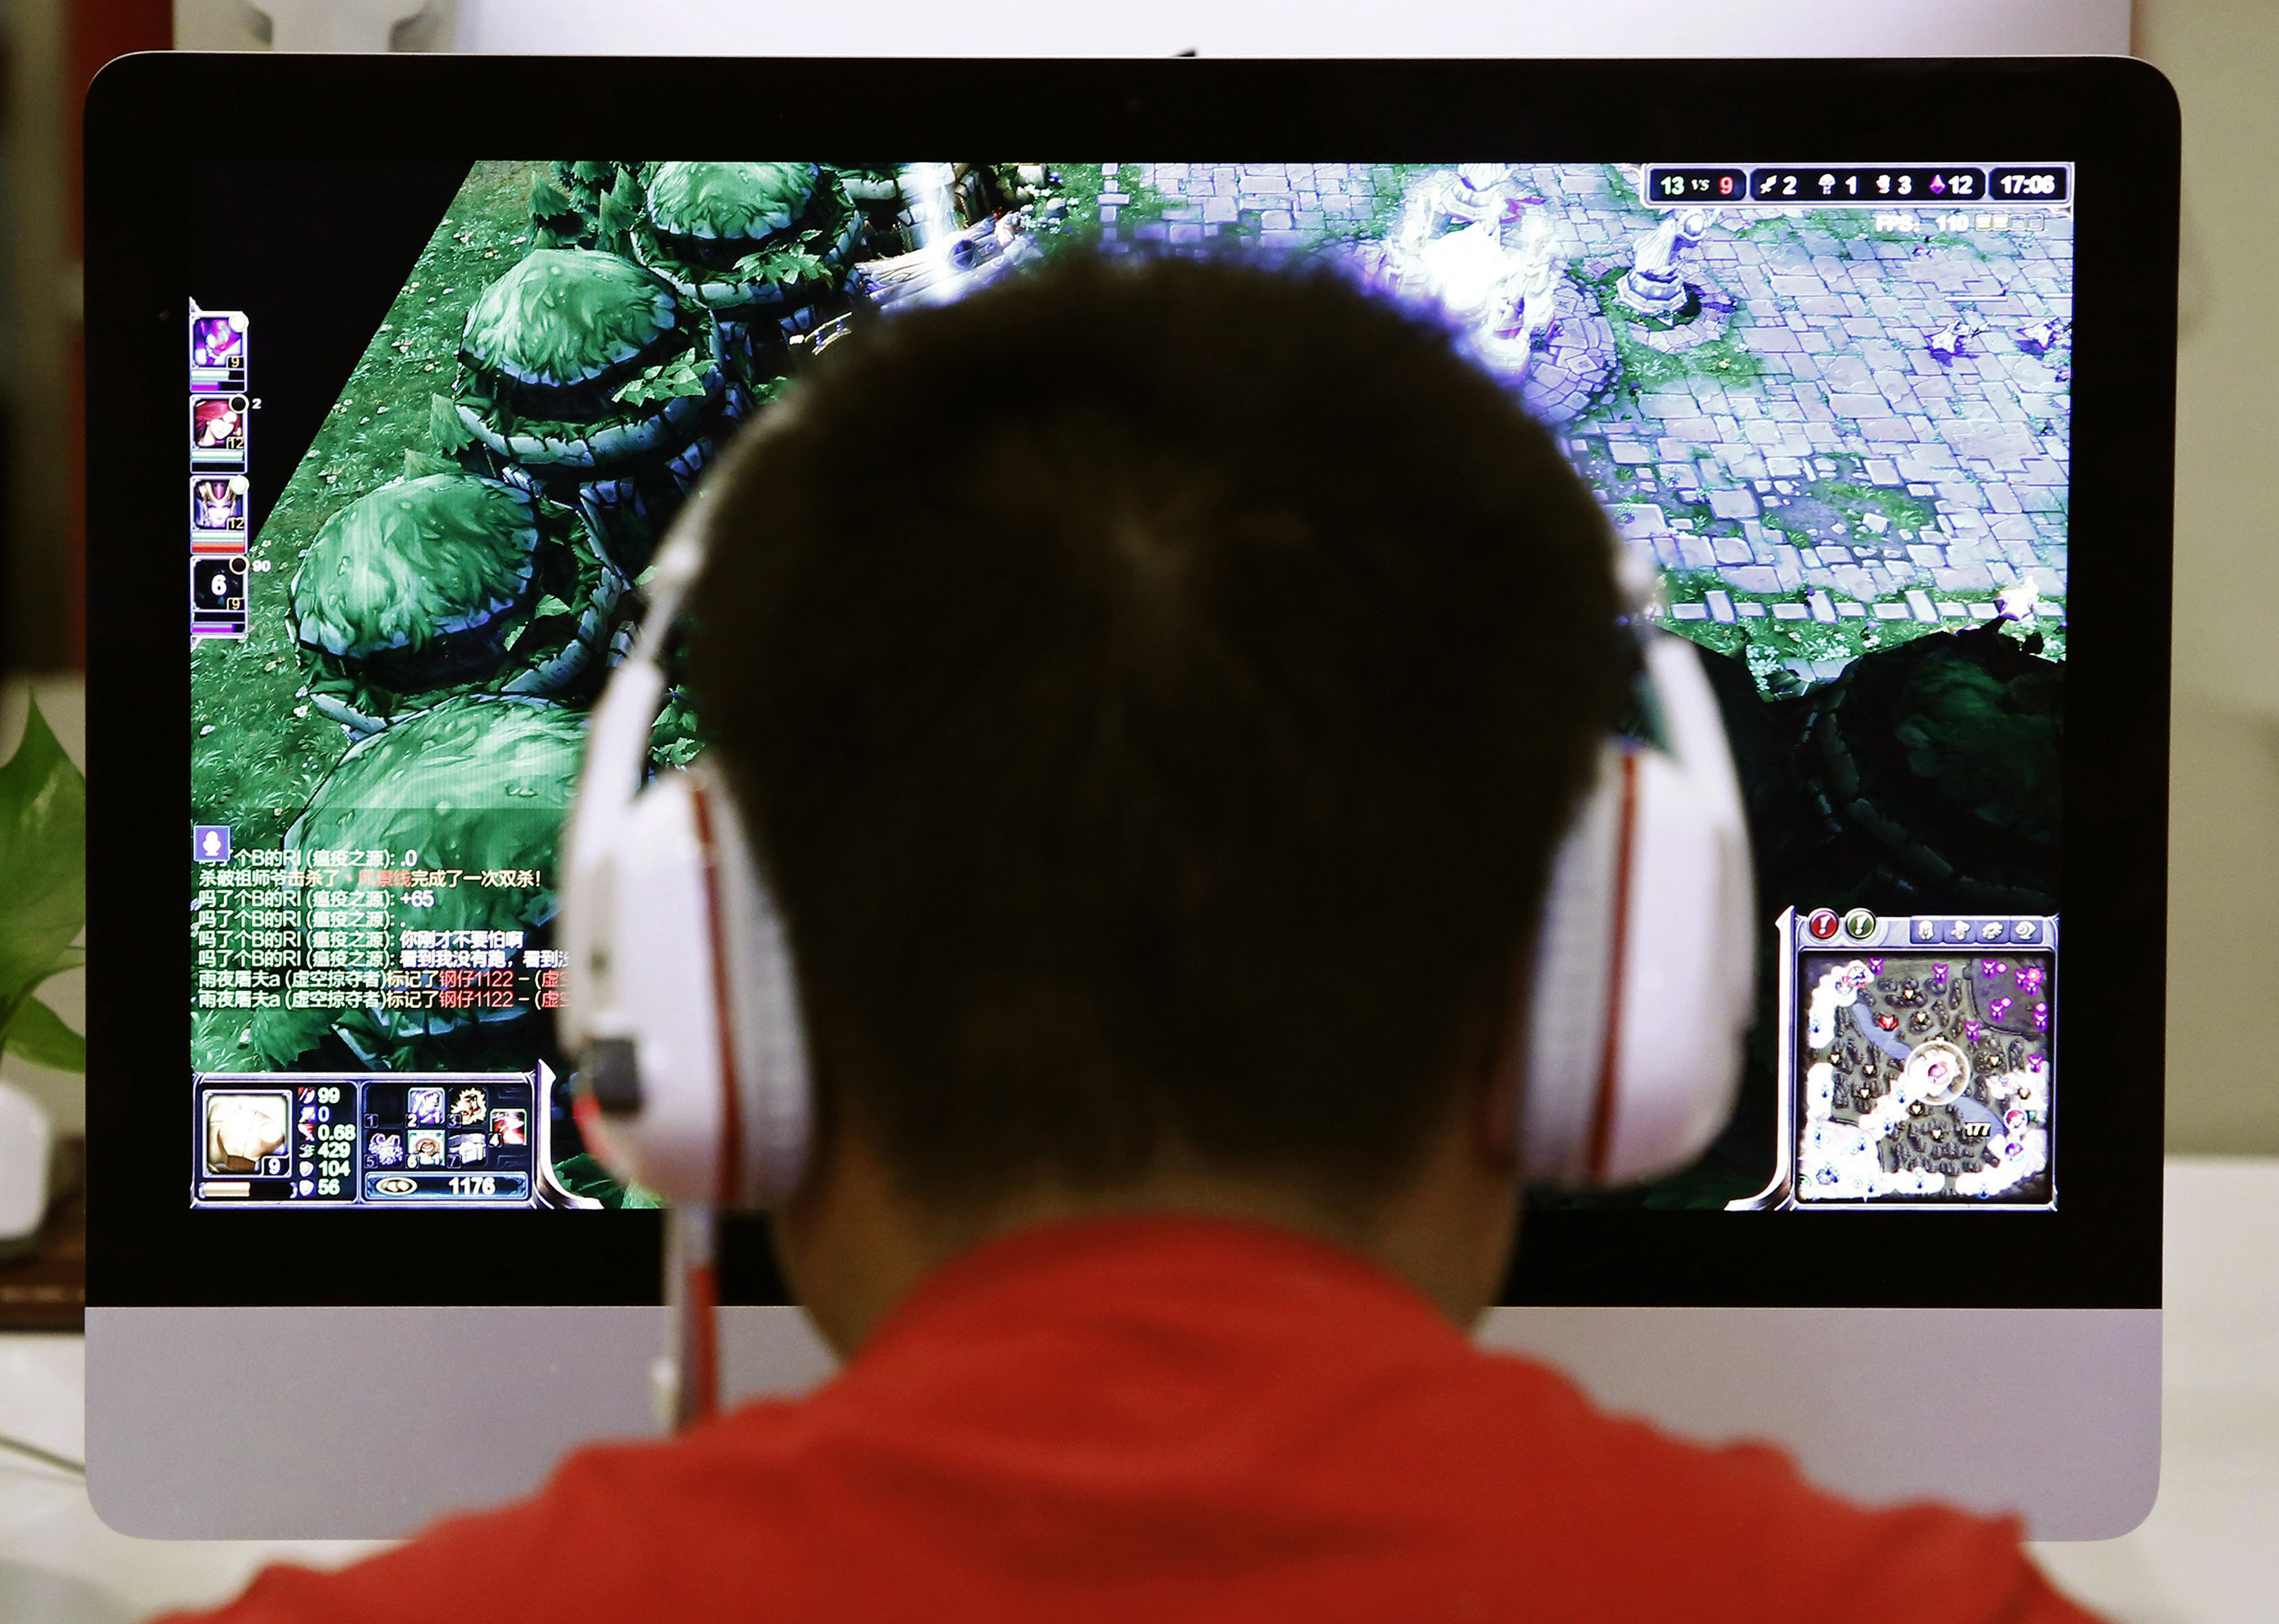 A man plays a computer game at an internet cafe in Beijing May 9, 2014. As growing numbers of young people in China immerse themselves in the cyber world, spending hours playing games online, worried parents are increasingly turning to boot camps to crush addiction. Military-style boot camps, designed to wean young people off their addiction to the internet, number as many as 250 in China alone. Picture taken May 9, 2014. REUTERS/Kim Kyung-Hoon (CHINA - Tags: SOCIETY)ATTENTION EDITORS - PICTURE 01 OF 33 FOR PACKAGE 'CURING CHINA'S INTERNET ADDICTS'TO FIND ALL IMAGES SEARCH 'INTERNET BOOT CAMP' - GM1EA7110AW01